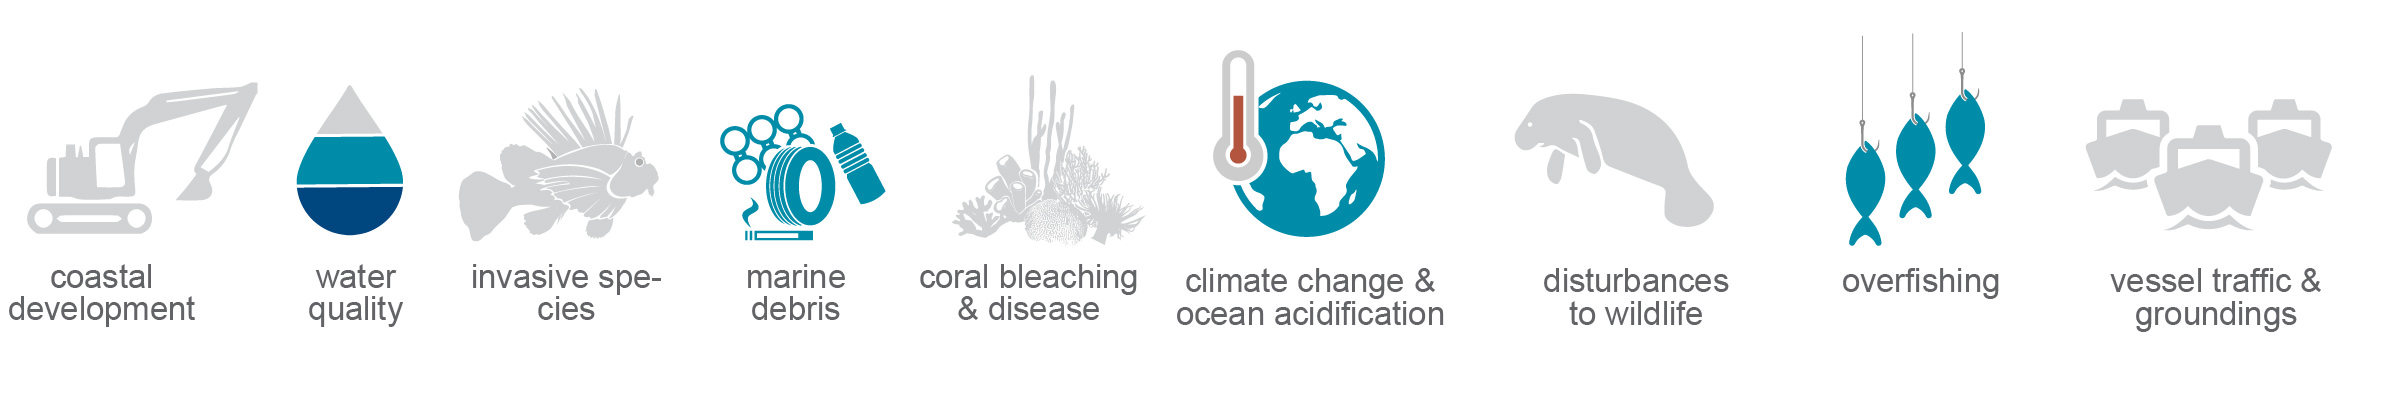 graphic list of presures on the ecosystem: coastal development, water quality, invasive species, marine debris, coral bleaching and disease, climate change and ocean acidification, disturbances to wildlife, overfishing and vessel traffic and groundings